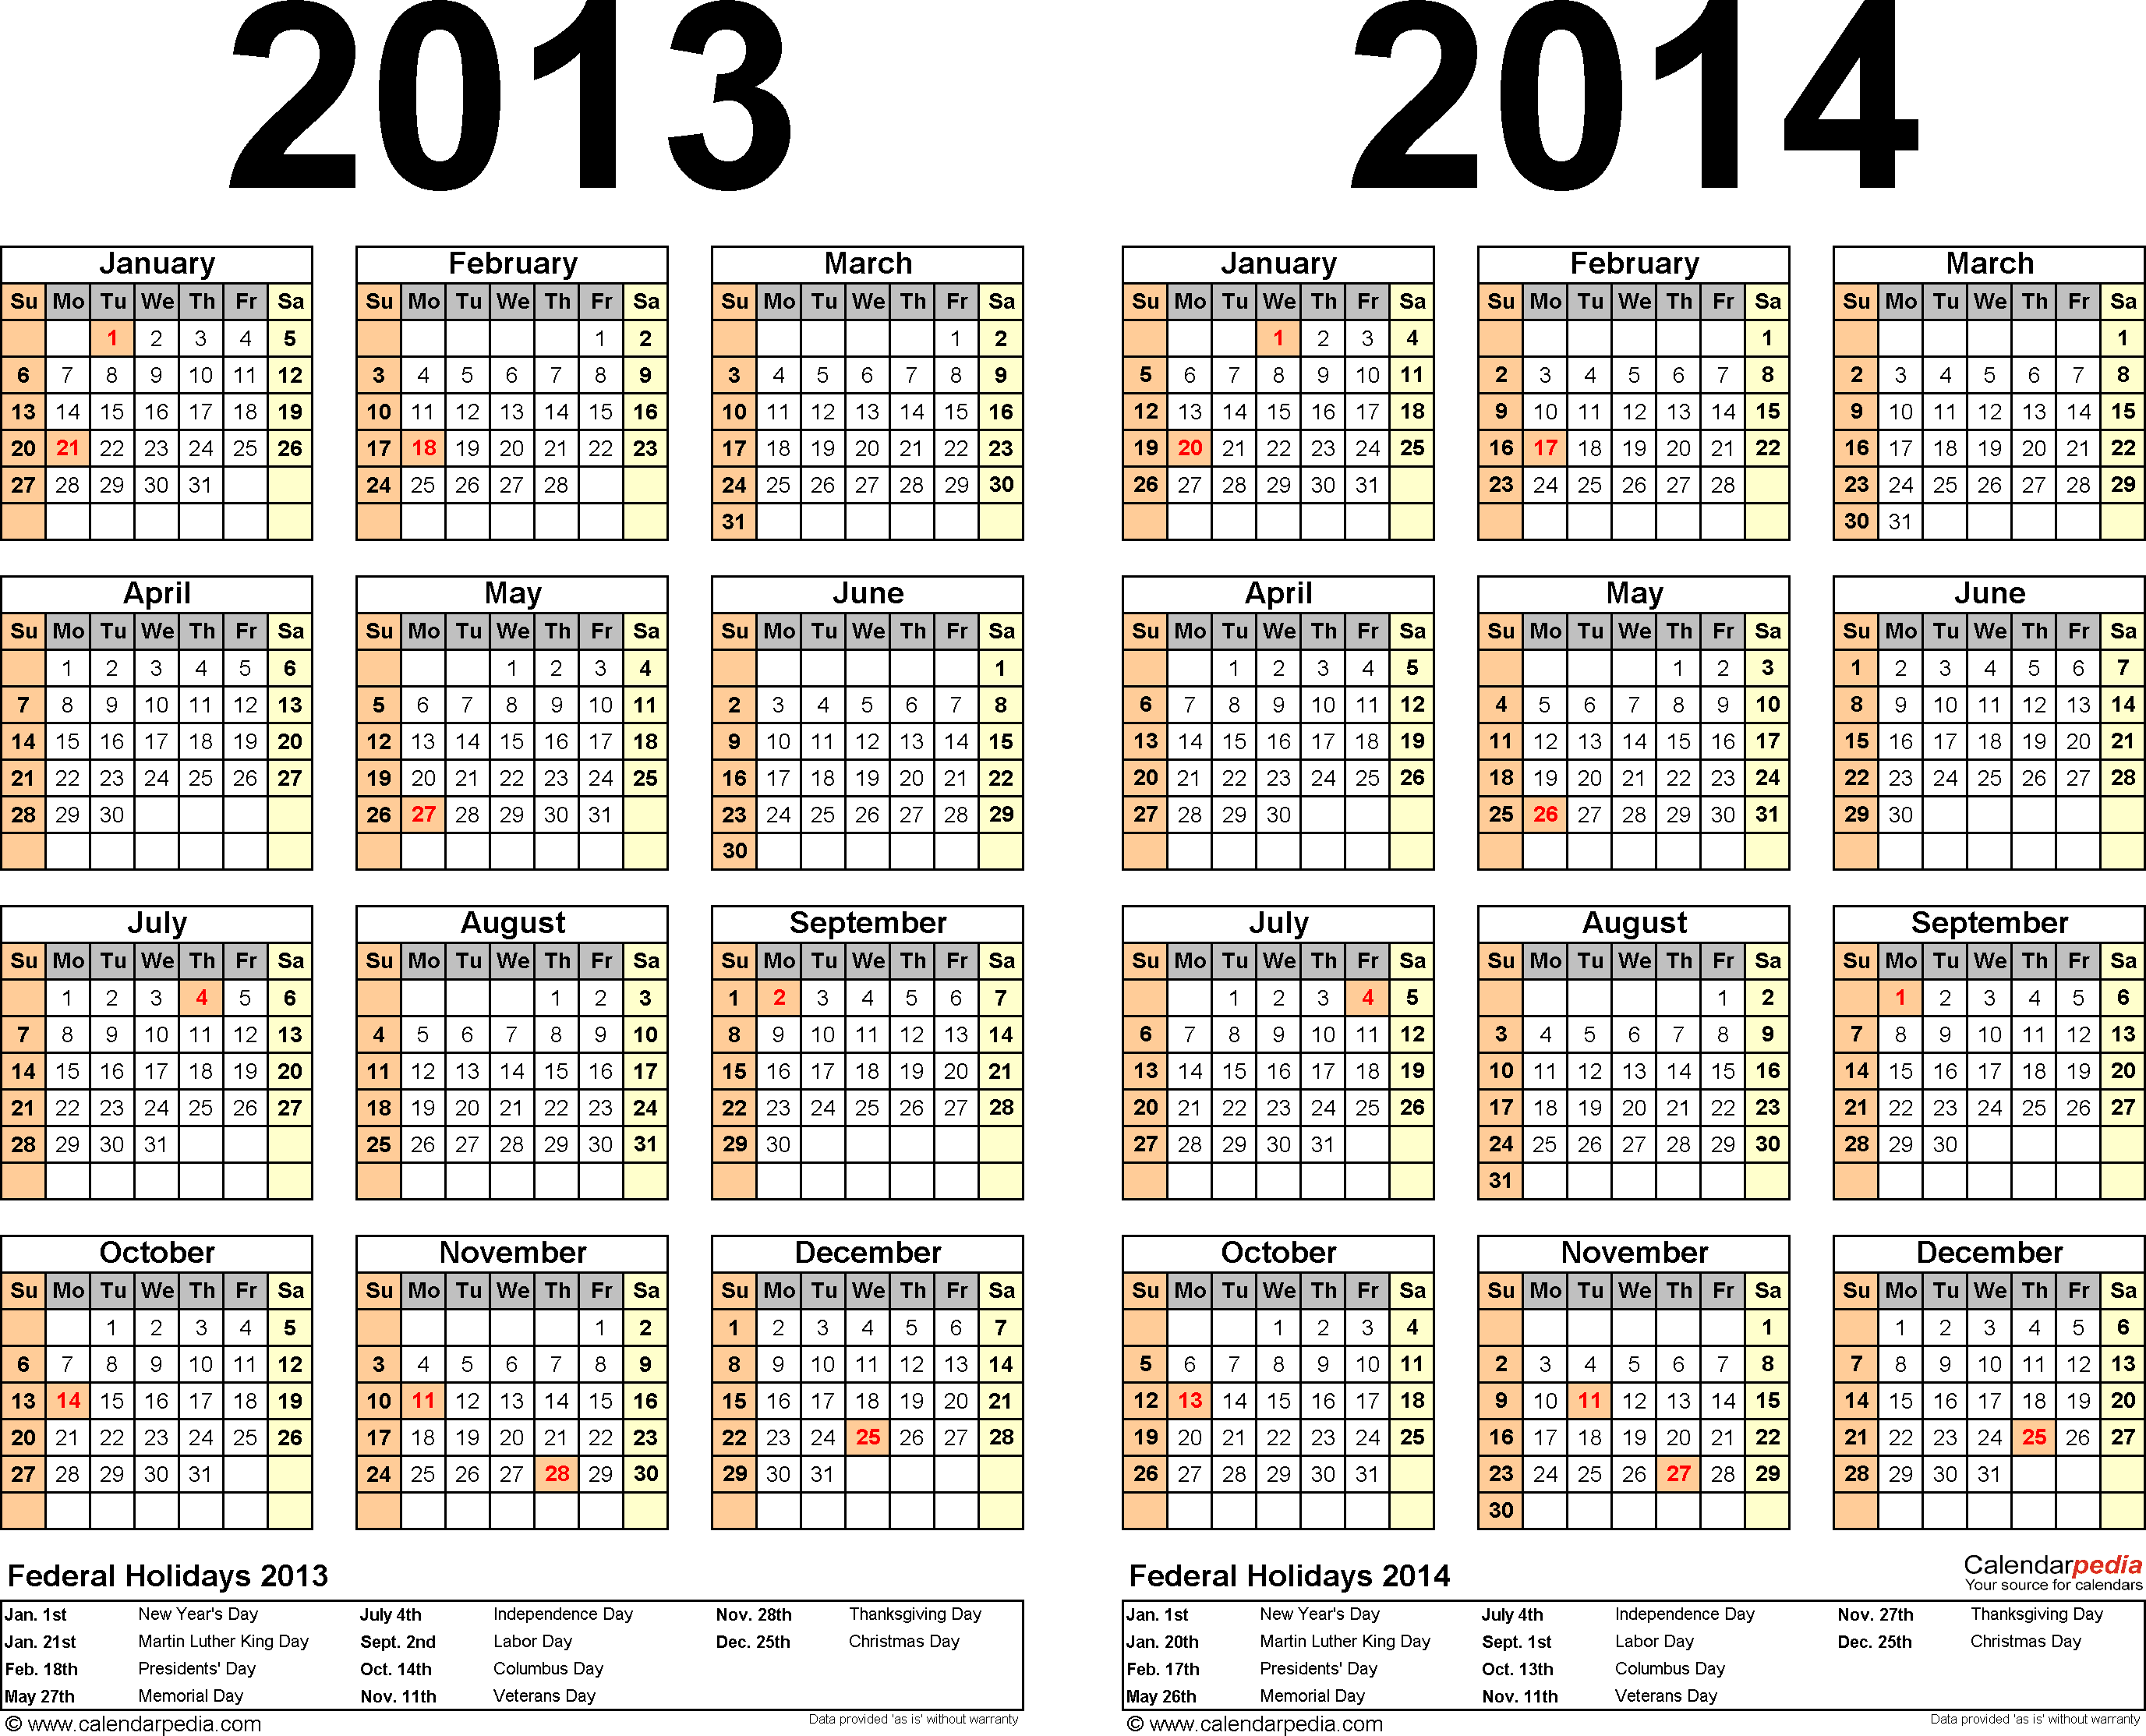 Download Template 2: PDF template for two year calendar 2013/2014 (landscape orientation, 1 page, years side by side)